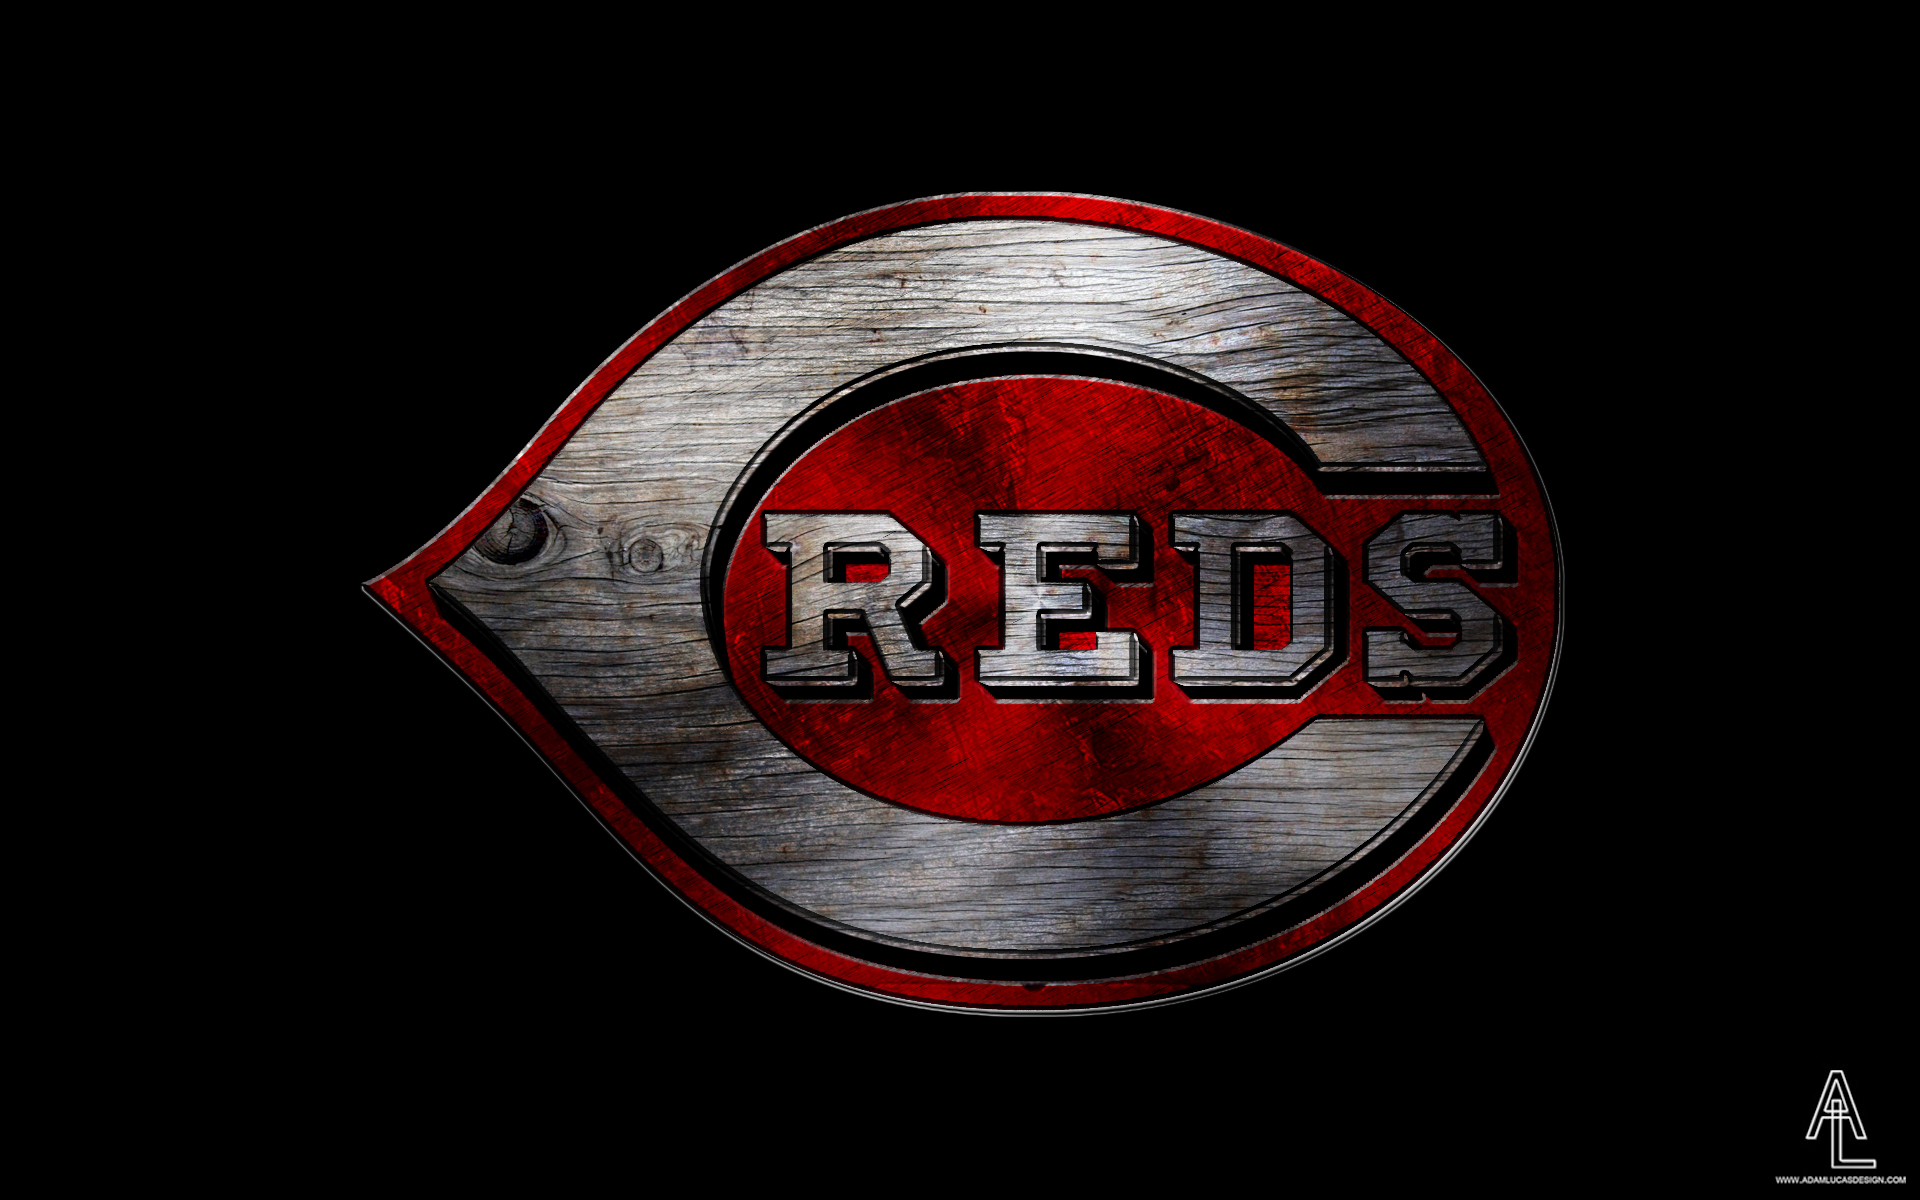 Amazing Cincinnati Reds Wallpaper: Stunning Cincinnati Reds Wallpapers Daily Inspiration Art Photos 1920x1200px